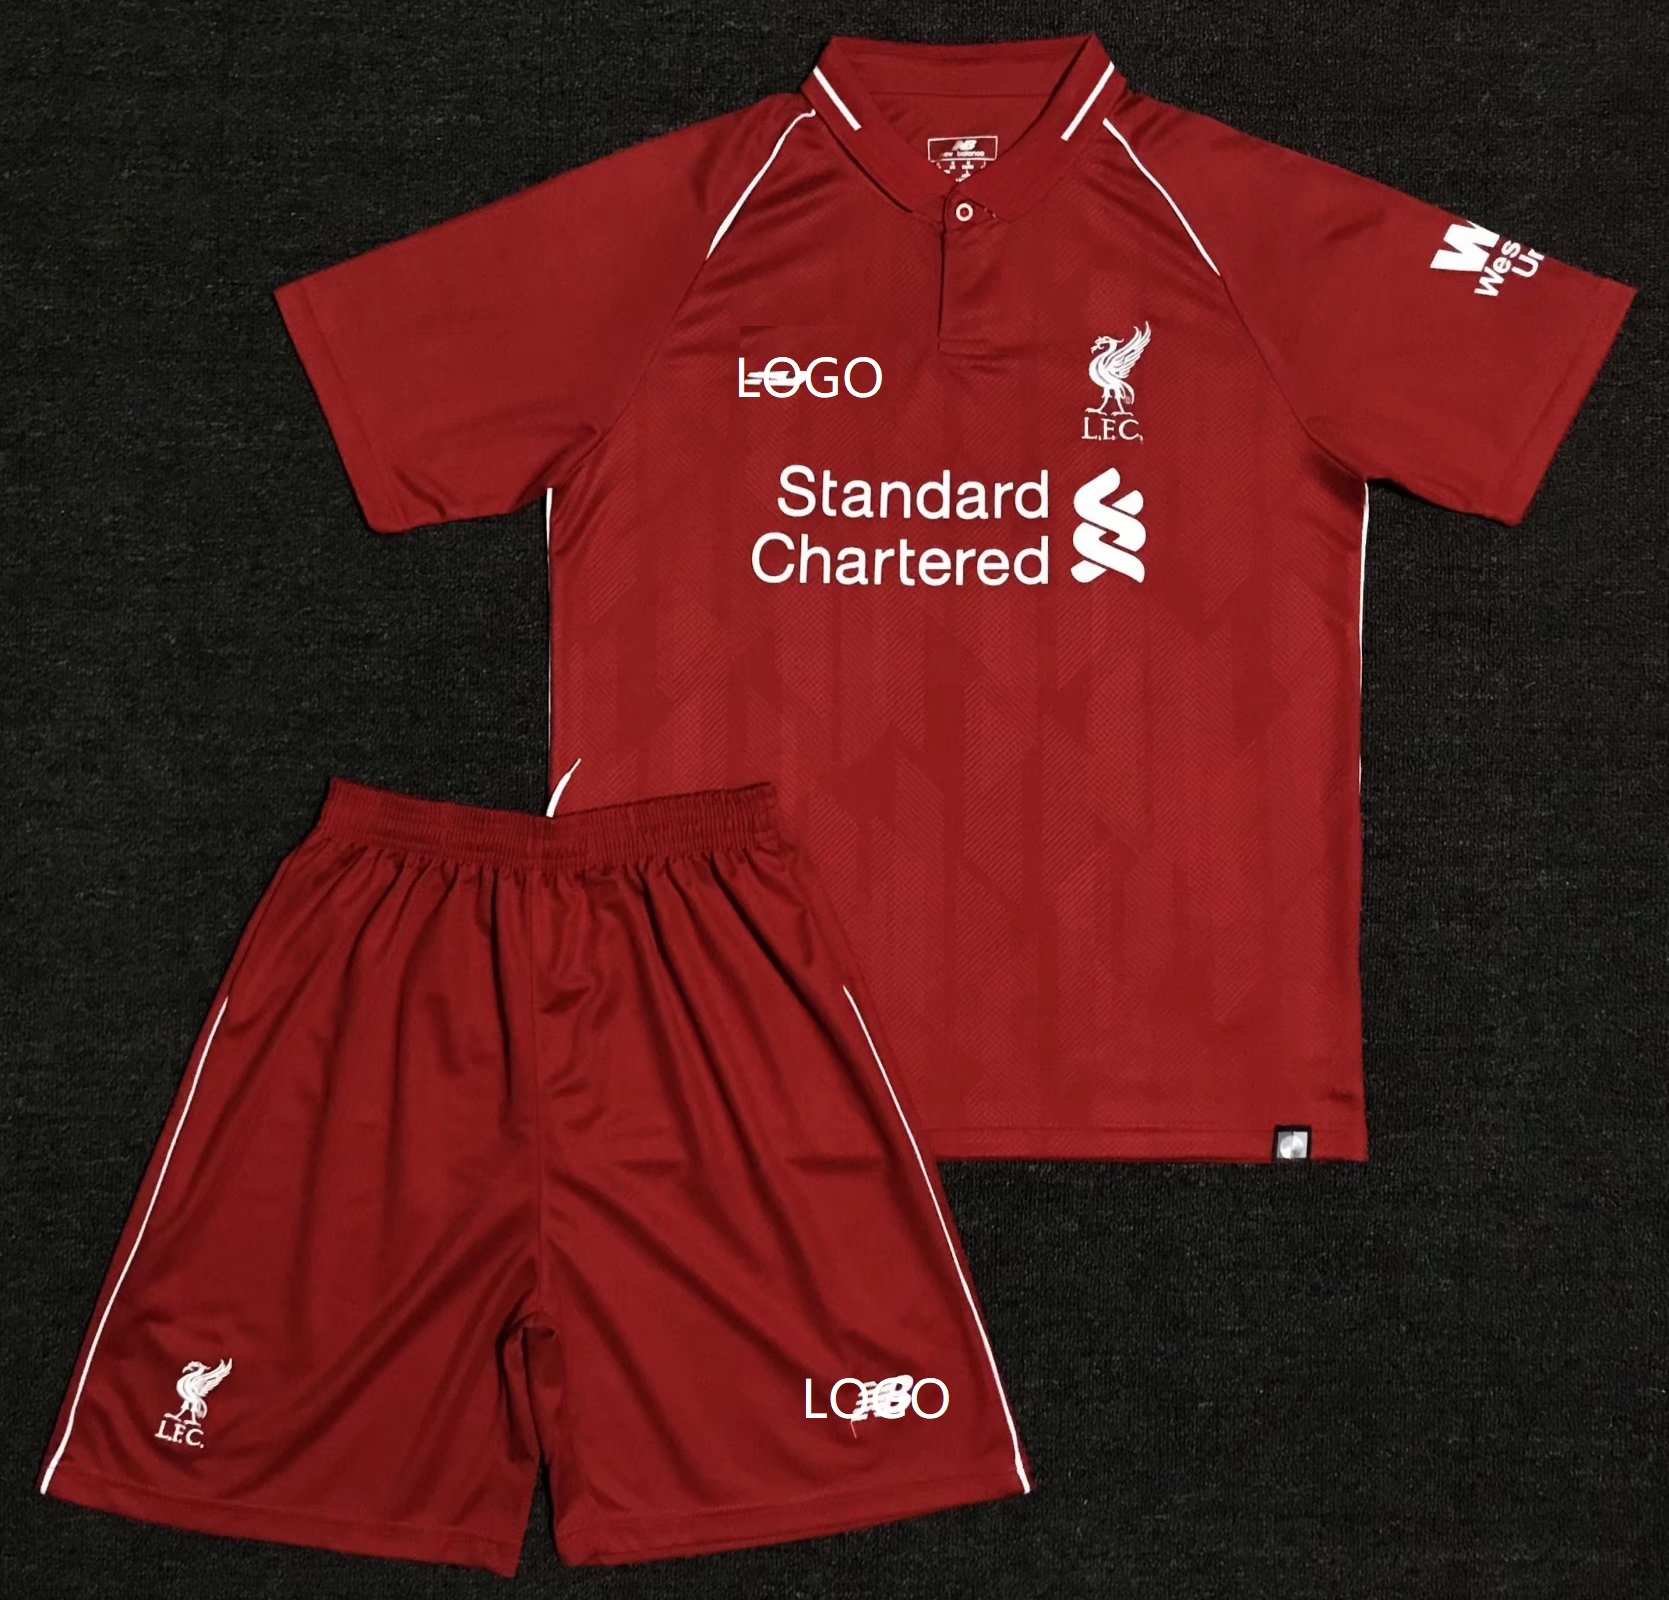 be55fc19c04 2018 19 Kids Liverpool Red Home With Brand Logo Soccer Kits Children  Football Uniform